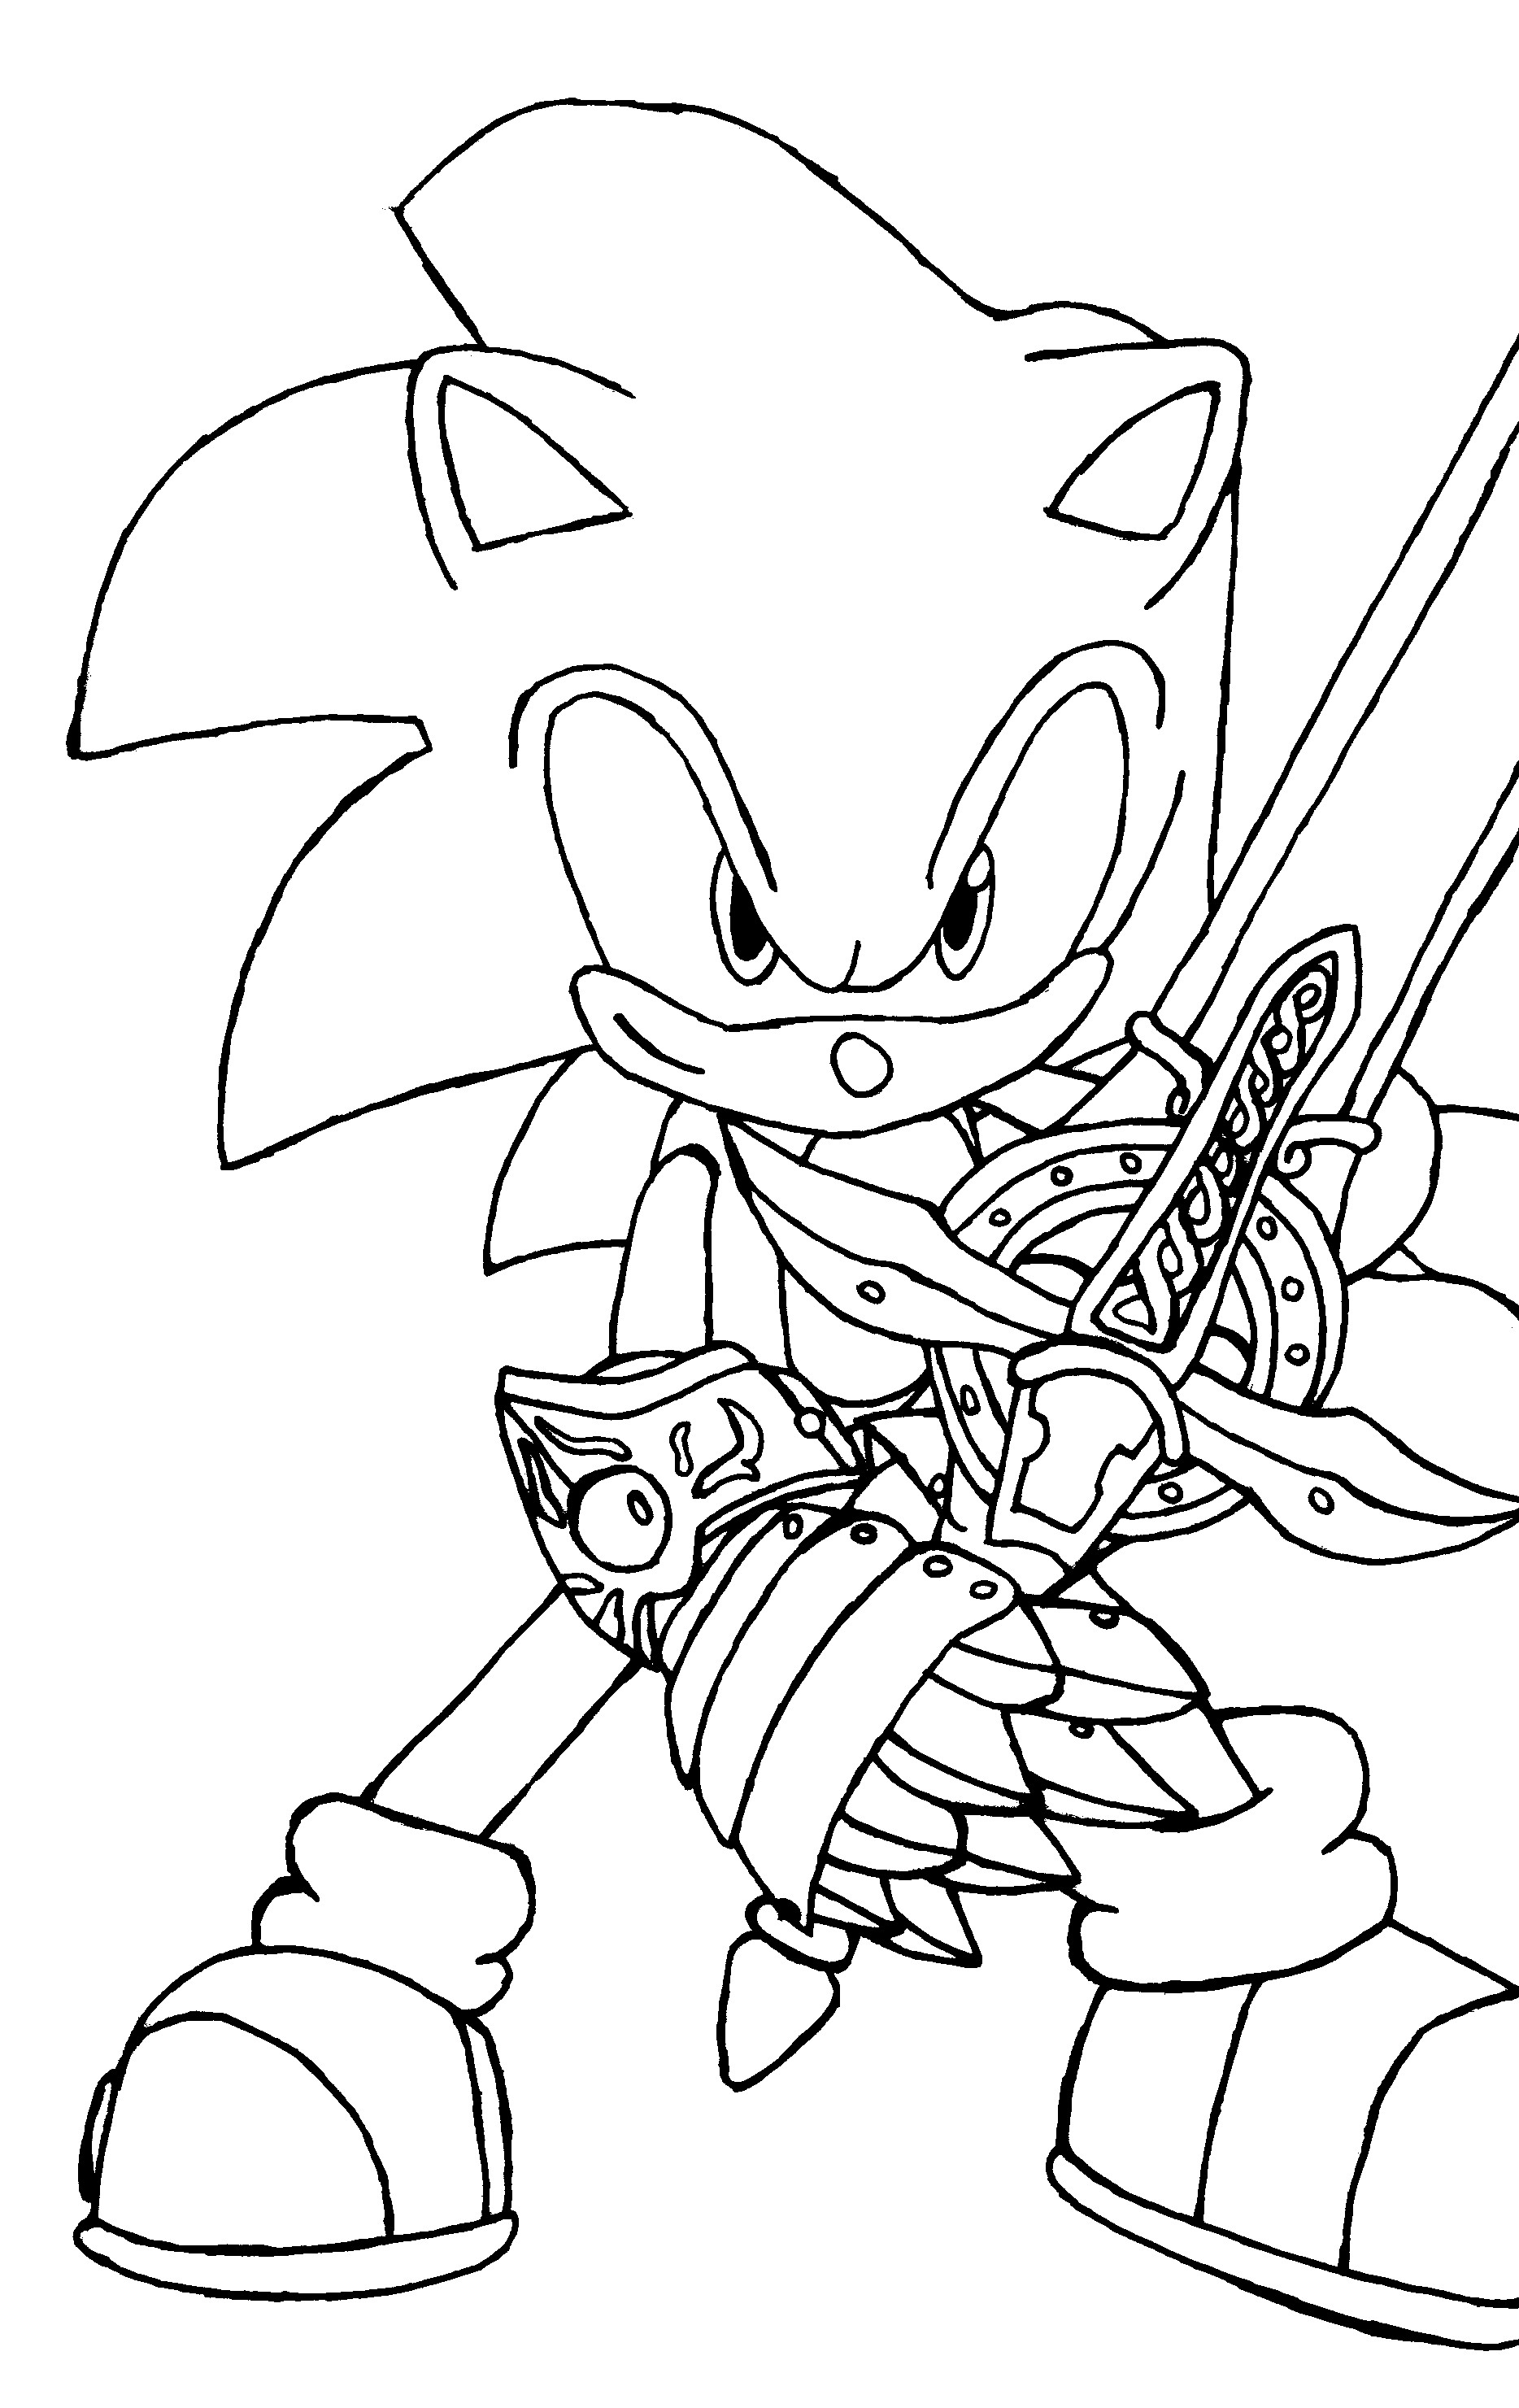 sonic coloring pages printable cute sonic the hedgehog coloring page hedgehog colors printable pages sonic coloring